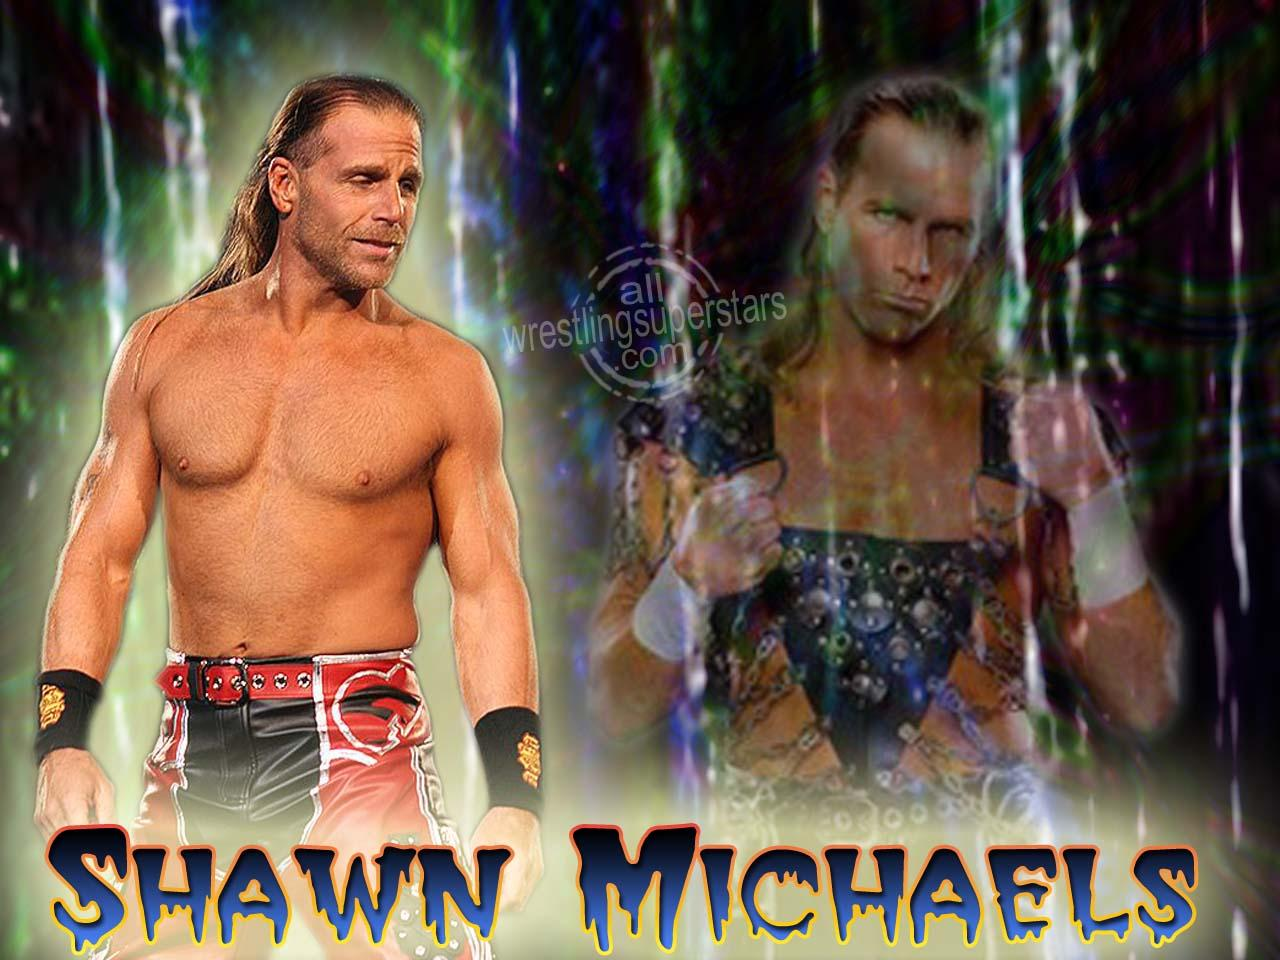 Sport Championship Wwe Shawn Michaels Wallpaper 1280x960